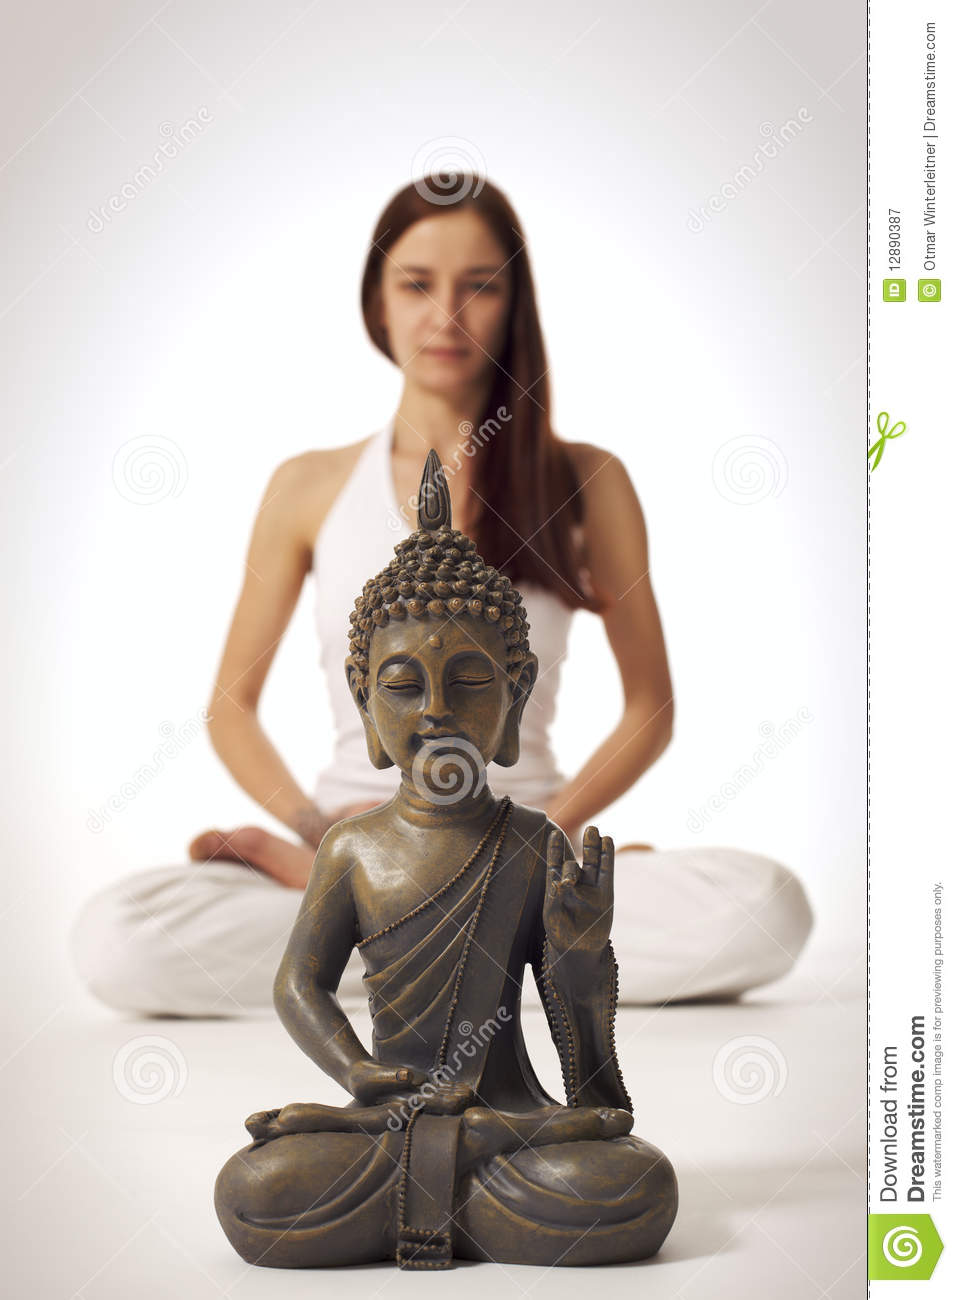 aibonito buddhist single women Meet buddhist colombian singles interested in dating there are 1000s of profiles to view for free at colombiancupidcom - join today.